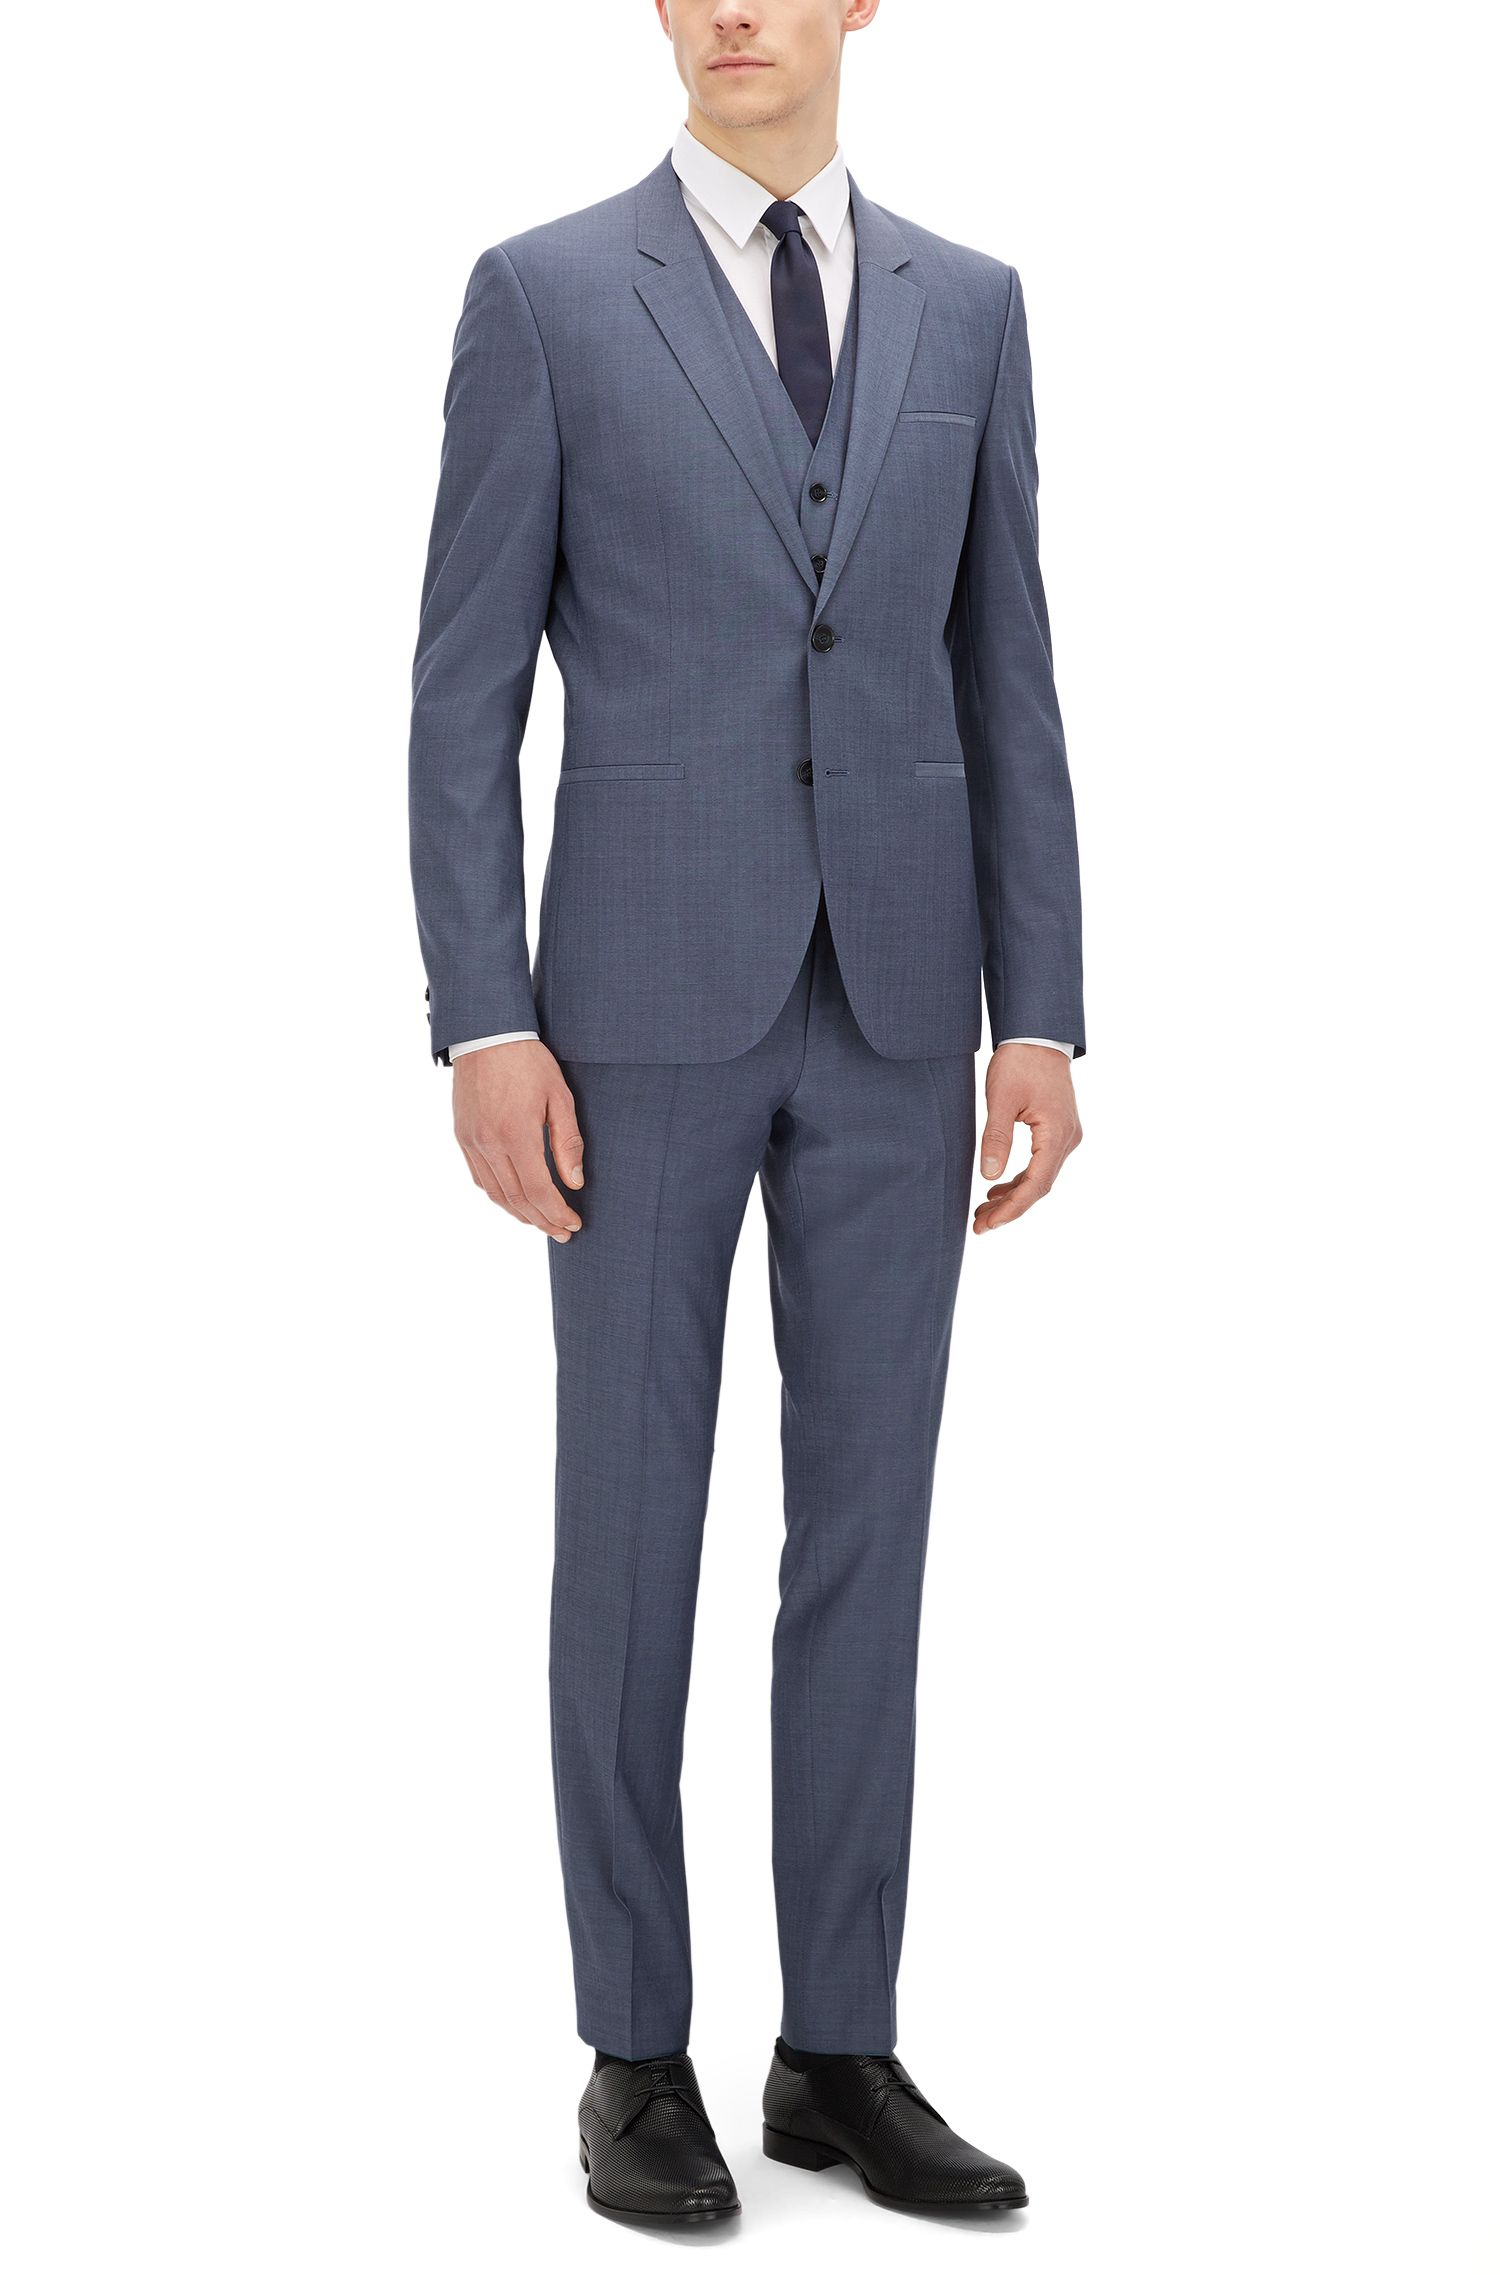 Italian Virgin Wool 3-Piece Suit, Slim Fit | Arvon/Wiant/Hilwert